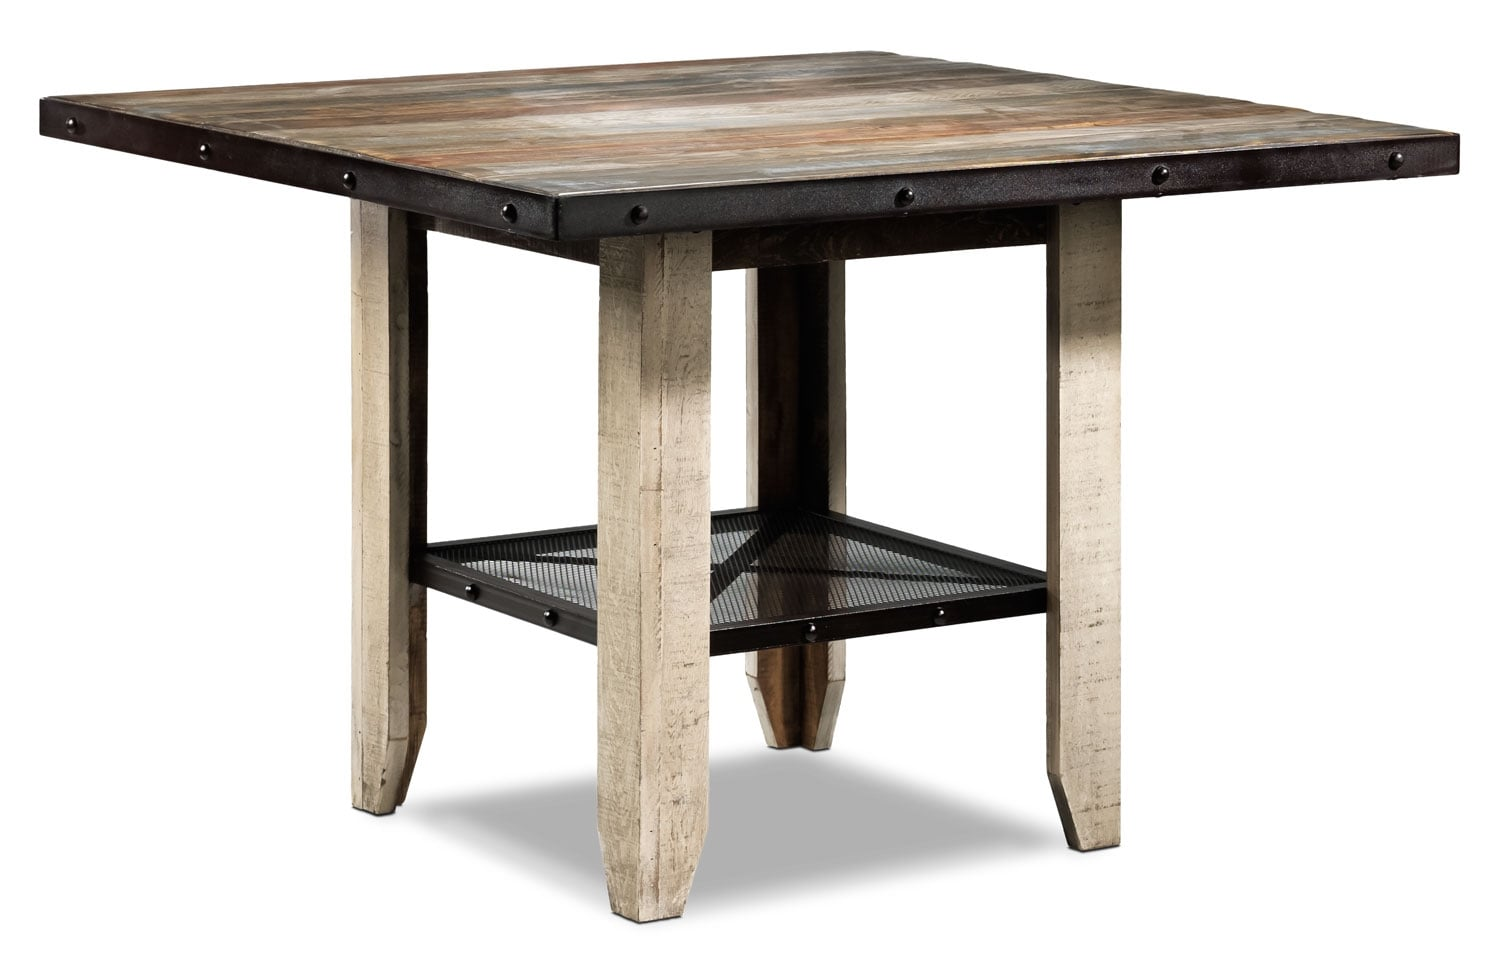 Allison Pine Pub Table - Antiqued Pine